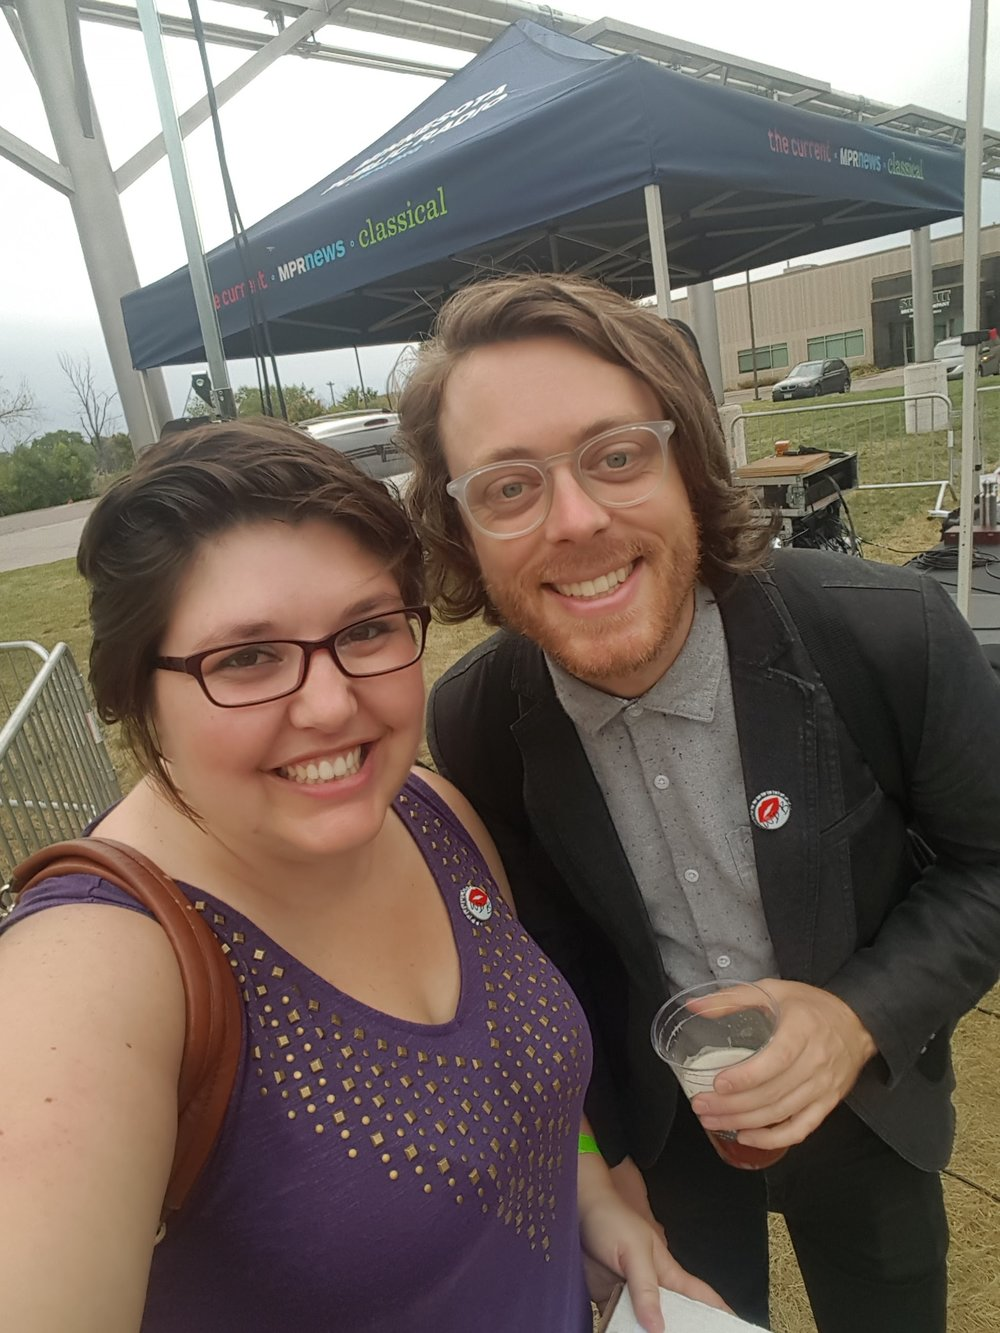 Jeremy Messersmith is THE. COOLEST. He wore a WDB pin and before this was taken he was discussing GoT outcomes with fans.